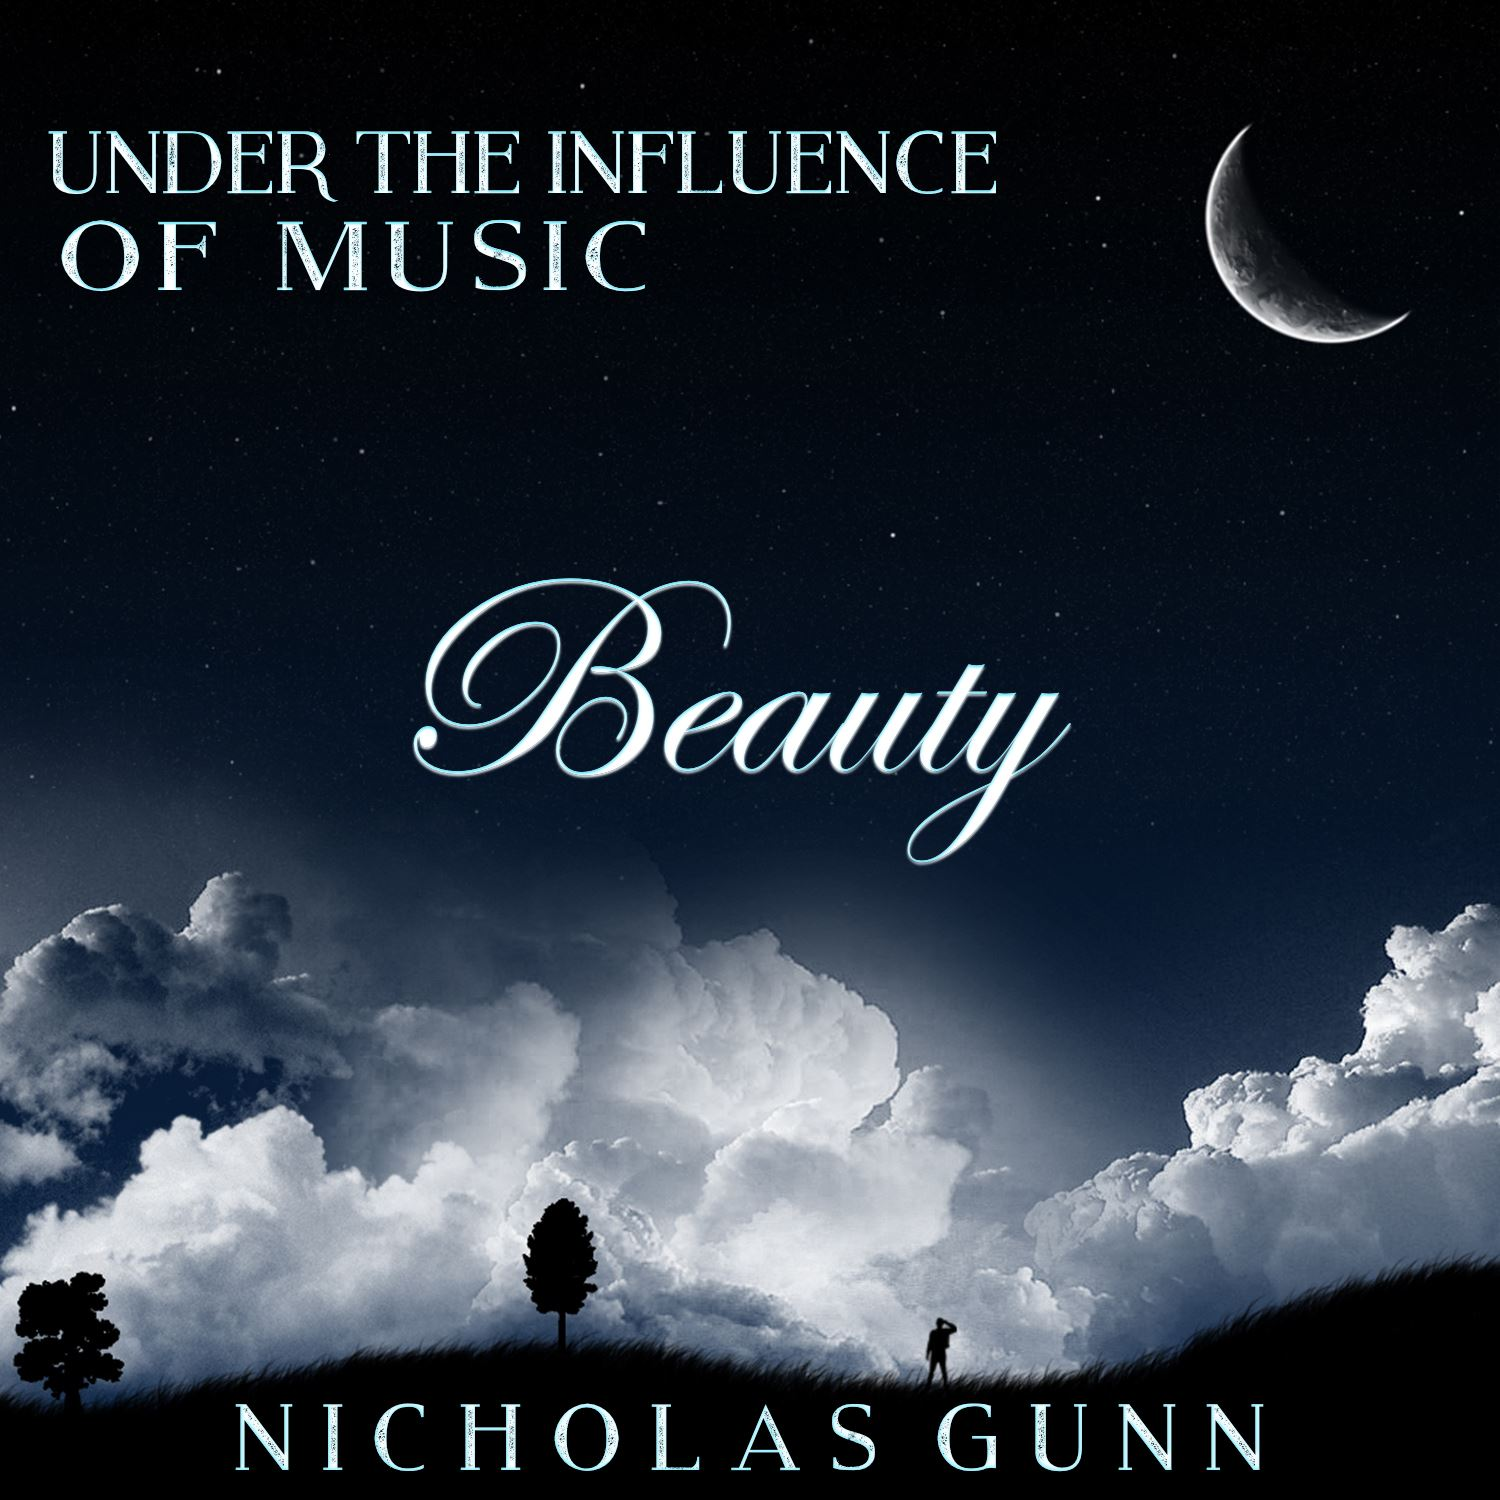 """Nicholas Gunn Returns With Dark Ambient Introduction To 'Under The Influence of Music', """"Beauty"""""""